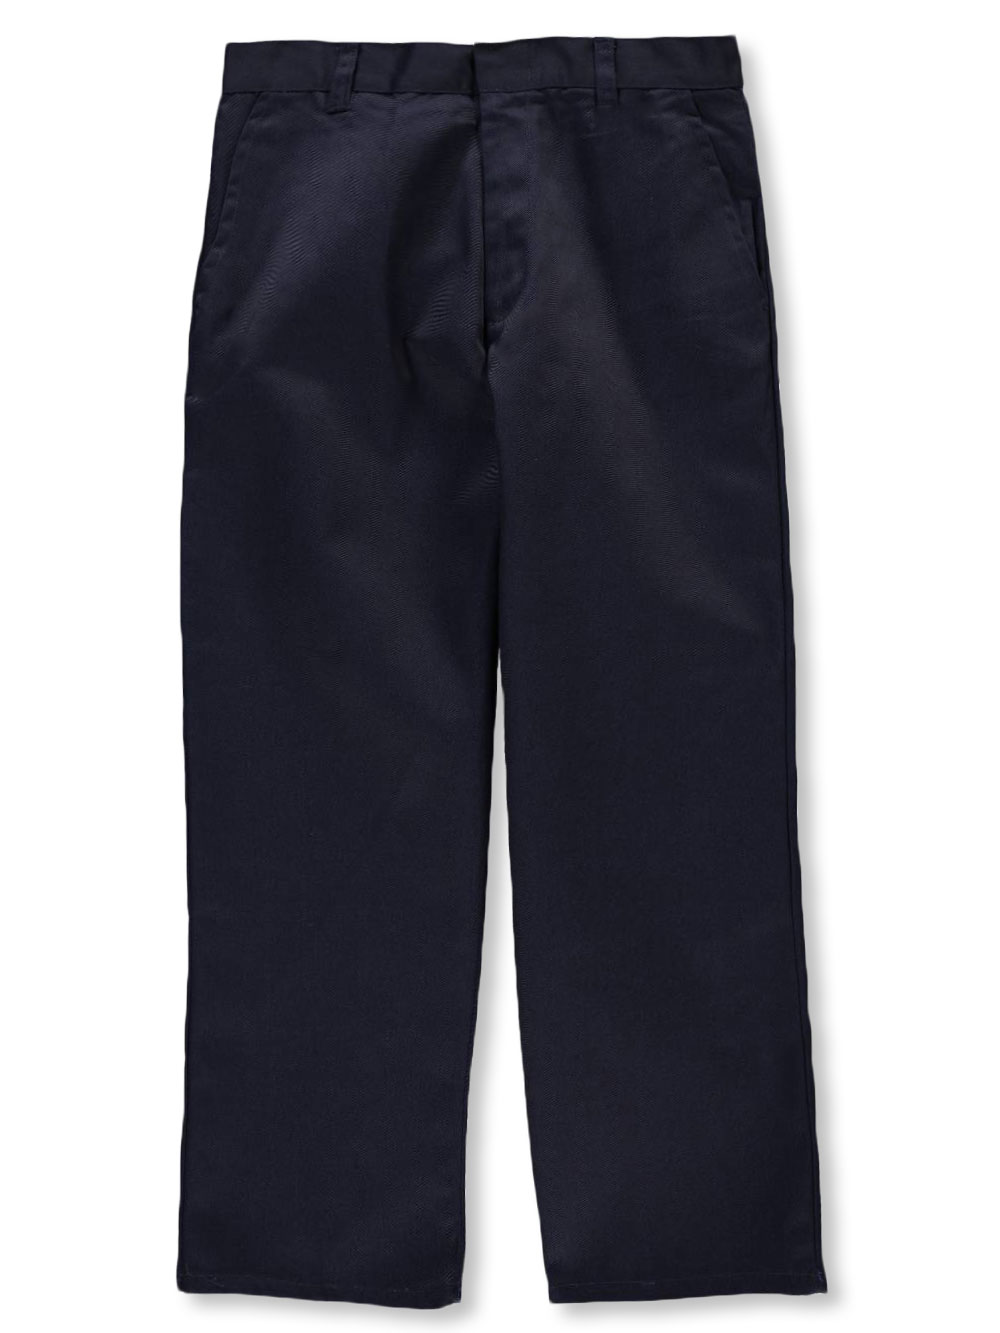 Free shipping BOTH ways on husky sweat pants for boys, from our vast selection of styles. Fast delivery, and 24/7/ real-person service with a smile. Click or call